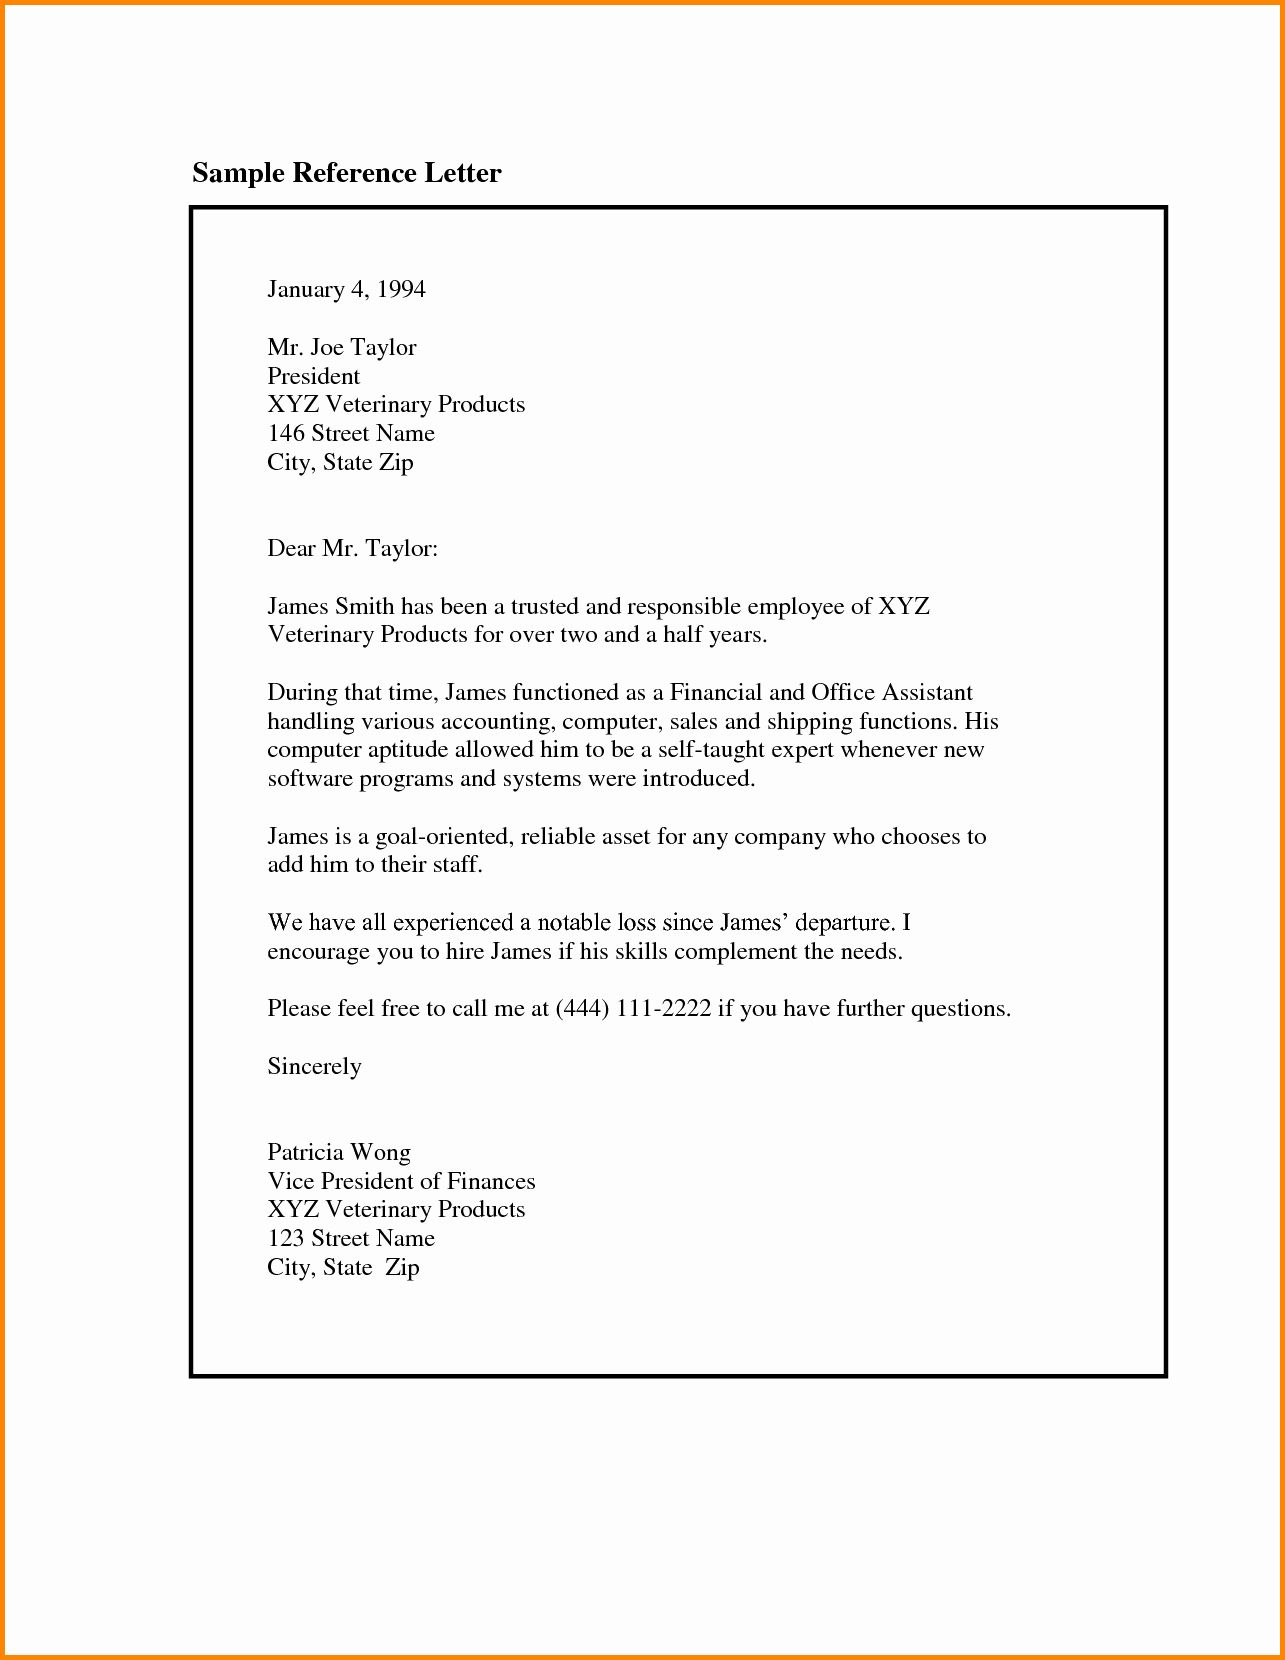 Sample Reference Letter For Employee Inspirational 8 Employee Reference Letter Sample Reference Letter Writing A Reference Letter Reference Letter Template Reference letter for employment samples